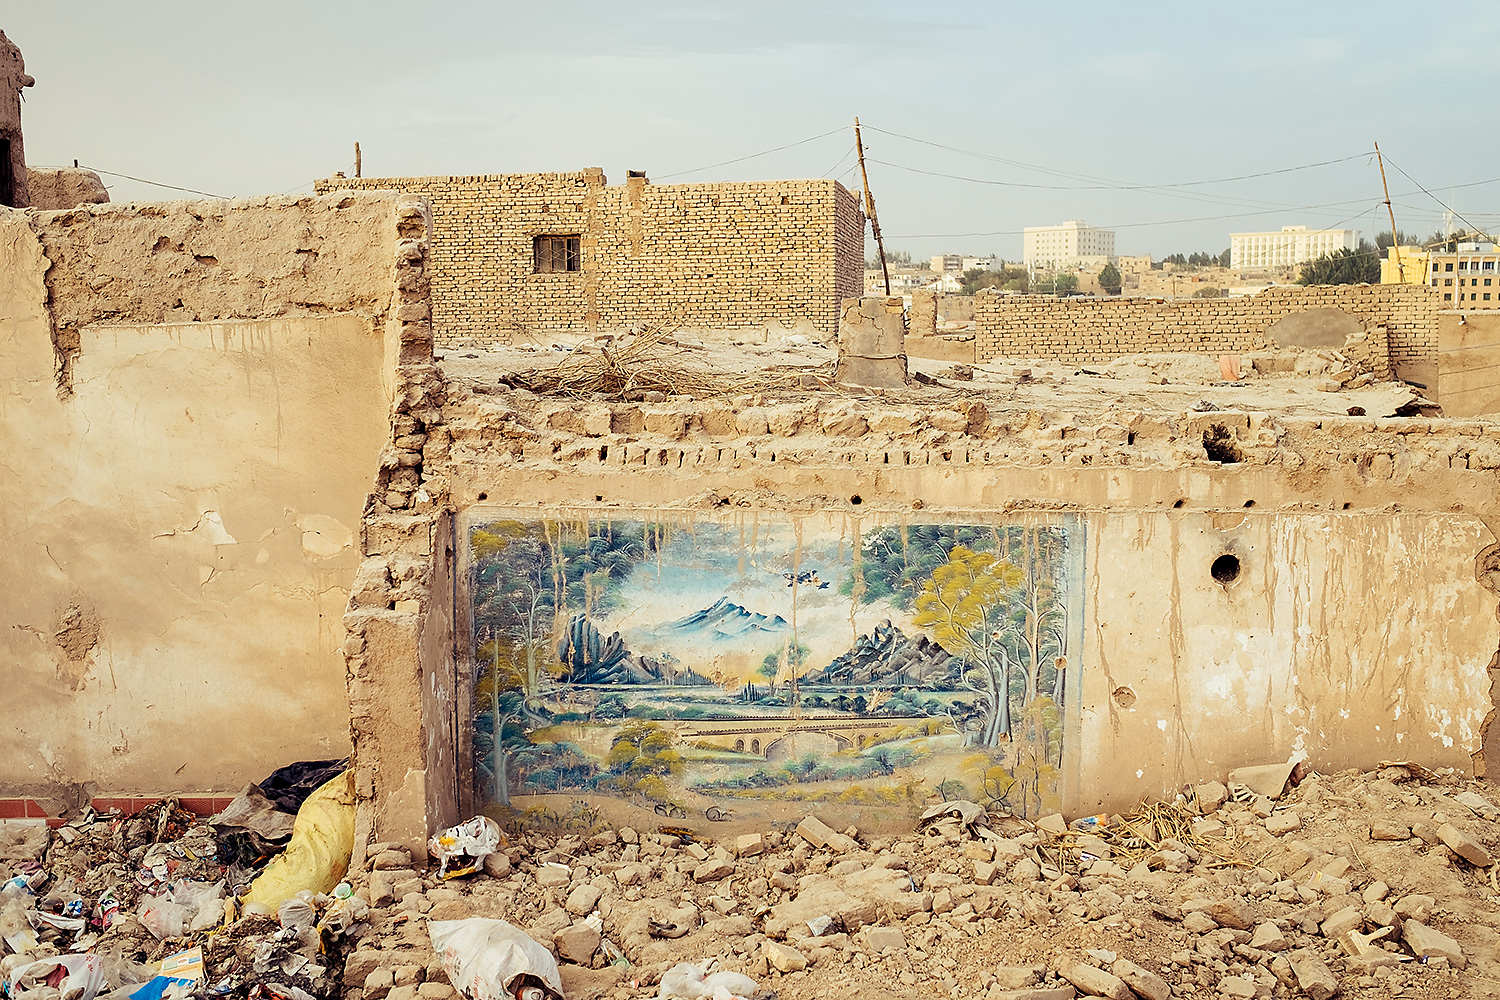 In the late 2000s, the government demolished much of Kashgar's Old City, angering many locals.  More recently, the local government is saving some of the Old City's traditional high platform houses to turn them into tourist attractions.